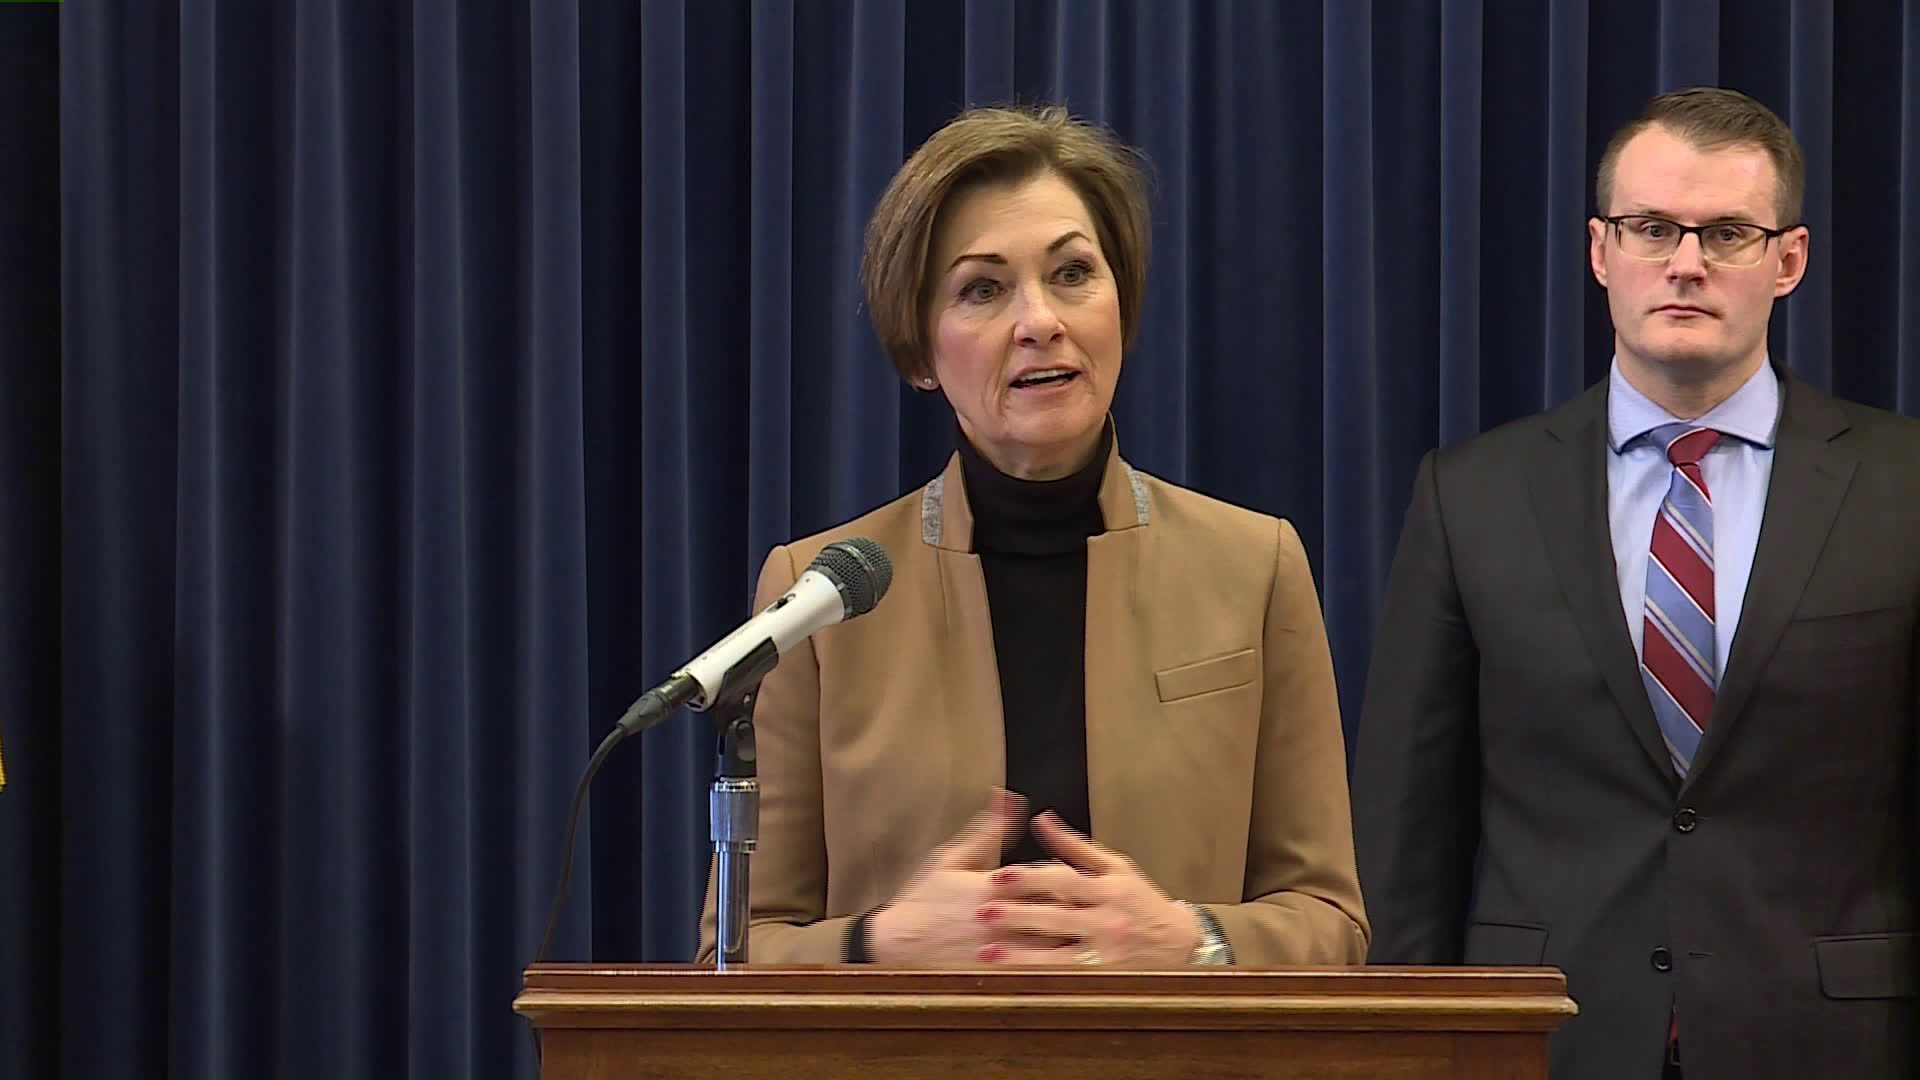 WATCH LIVE: Iowa Governor Holds Press Conference on COVID-19 1